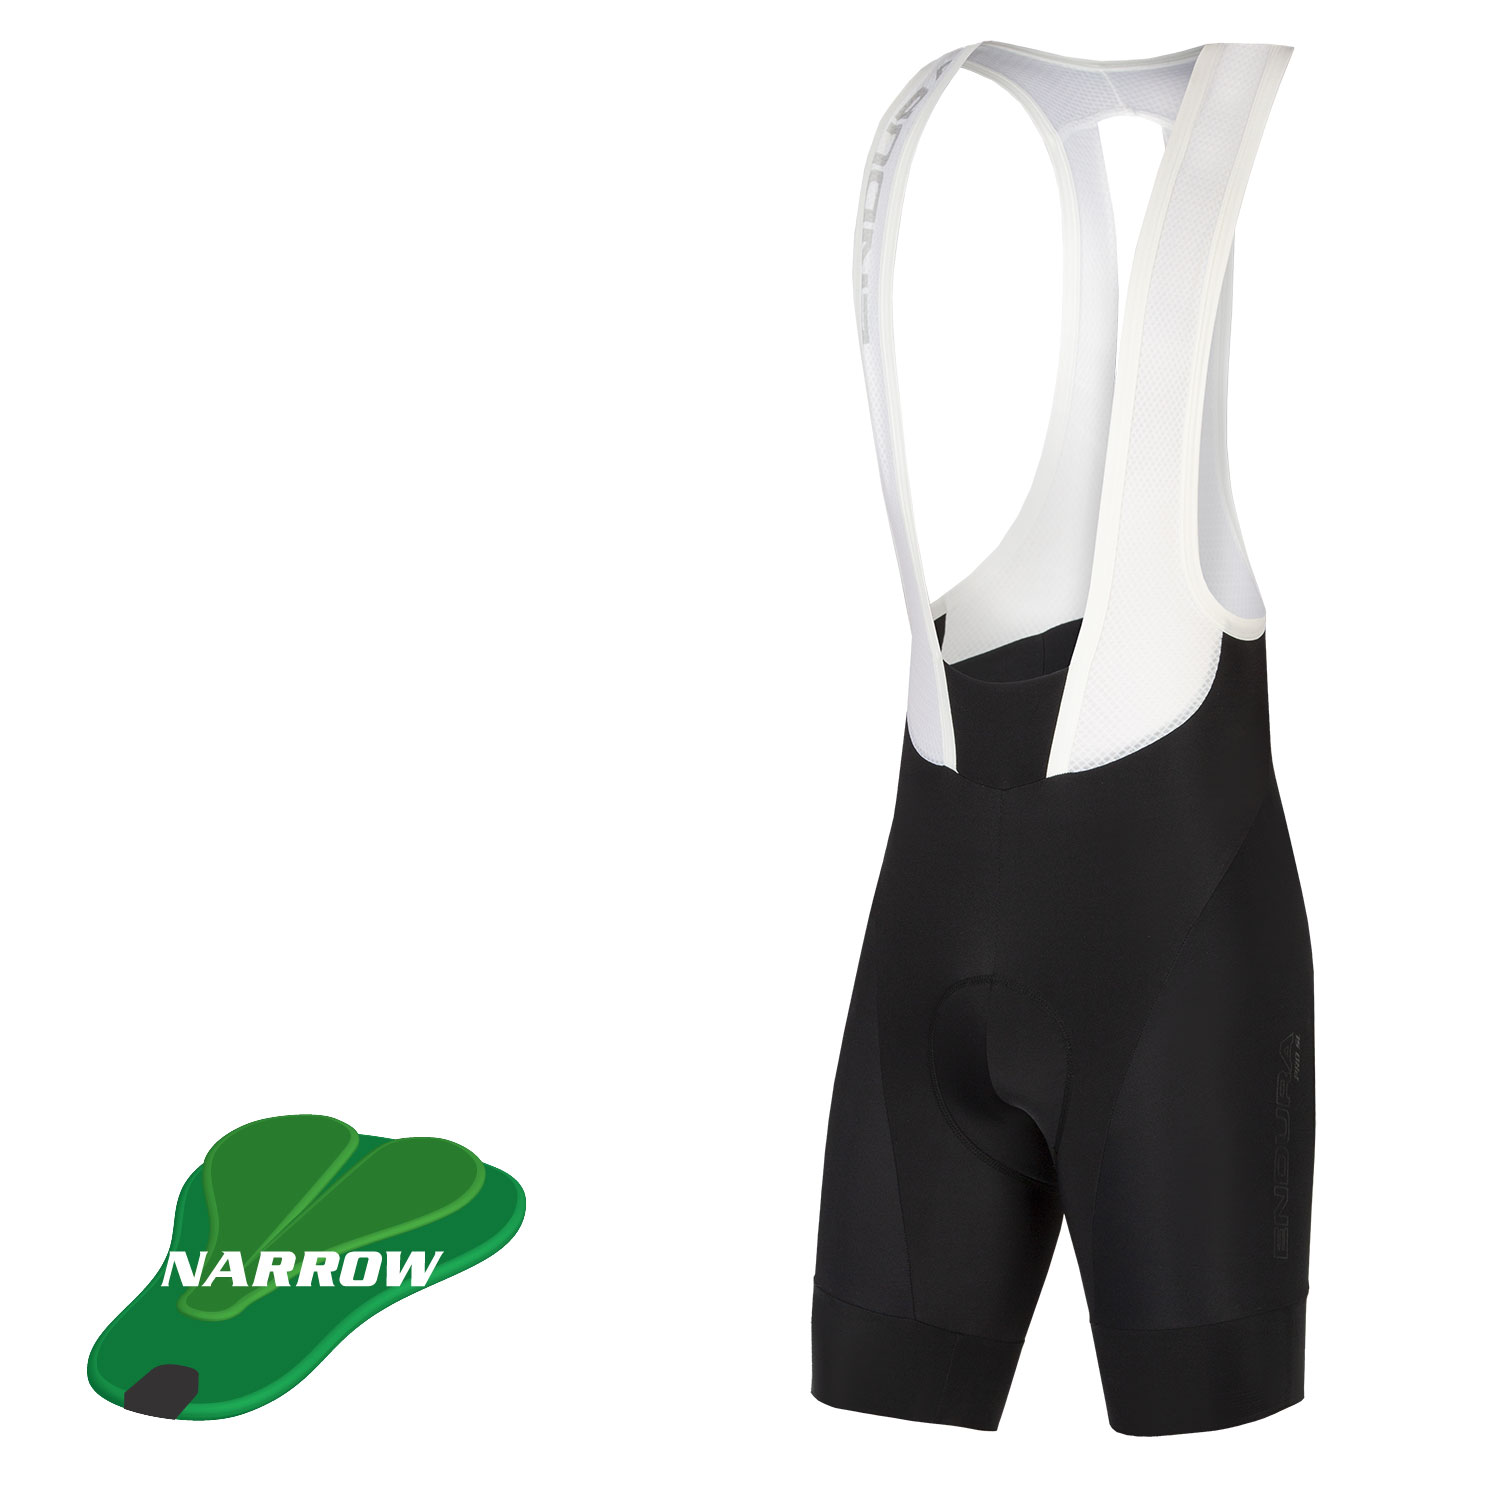 Pro SL Bibshort II (narrow-pad) Black